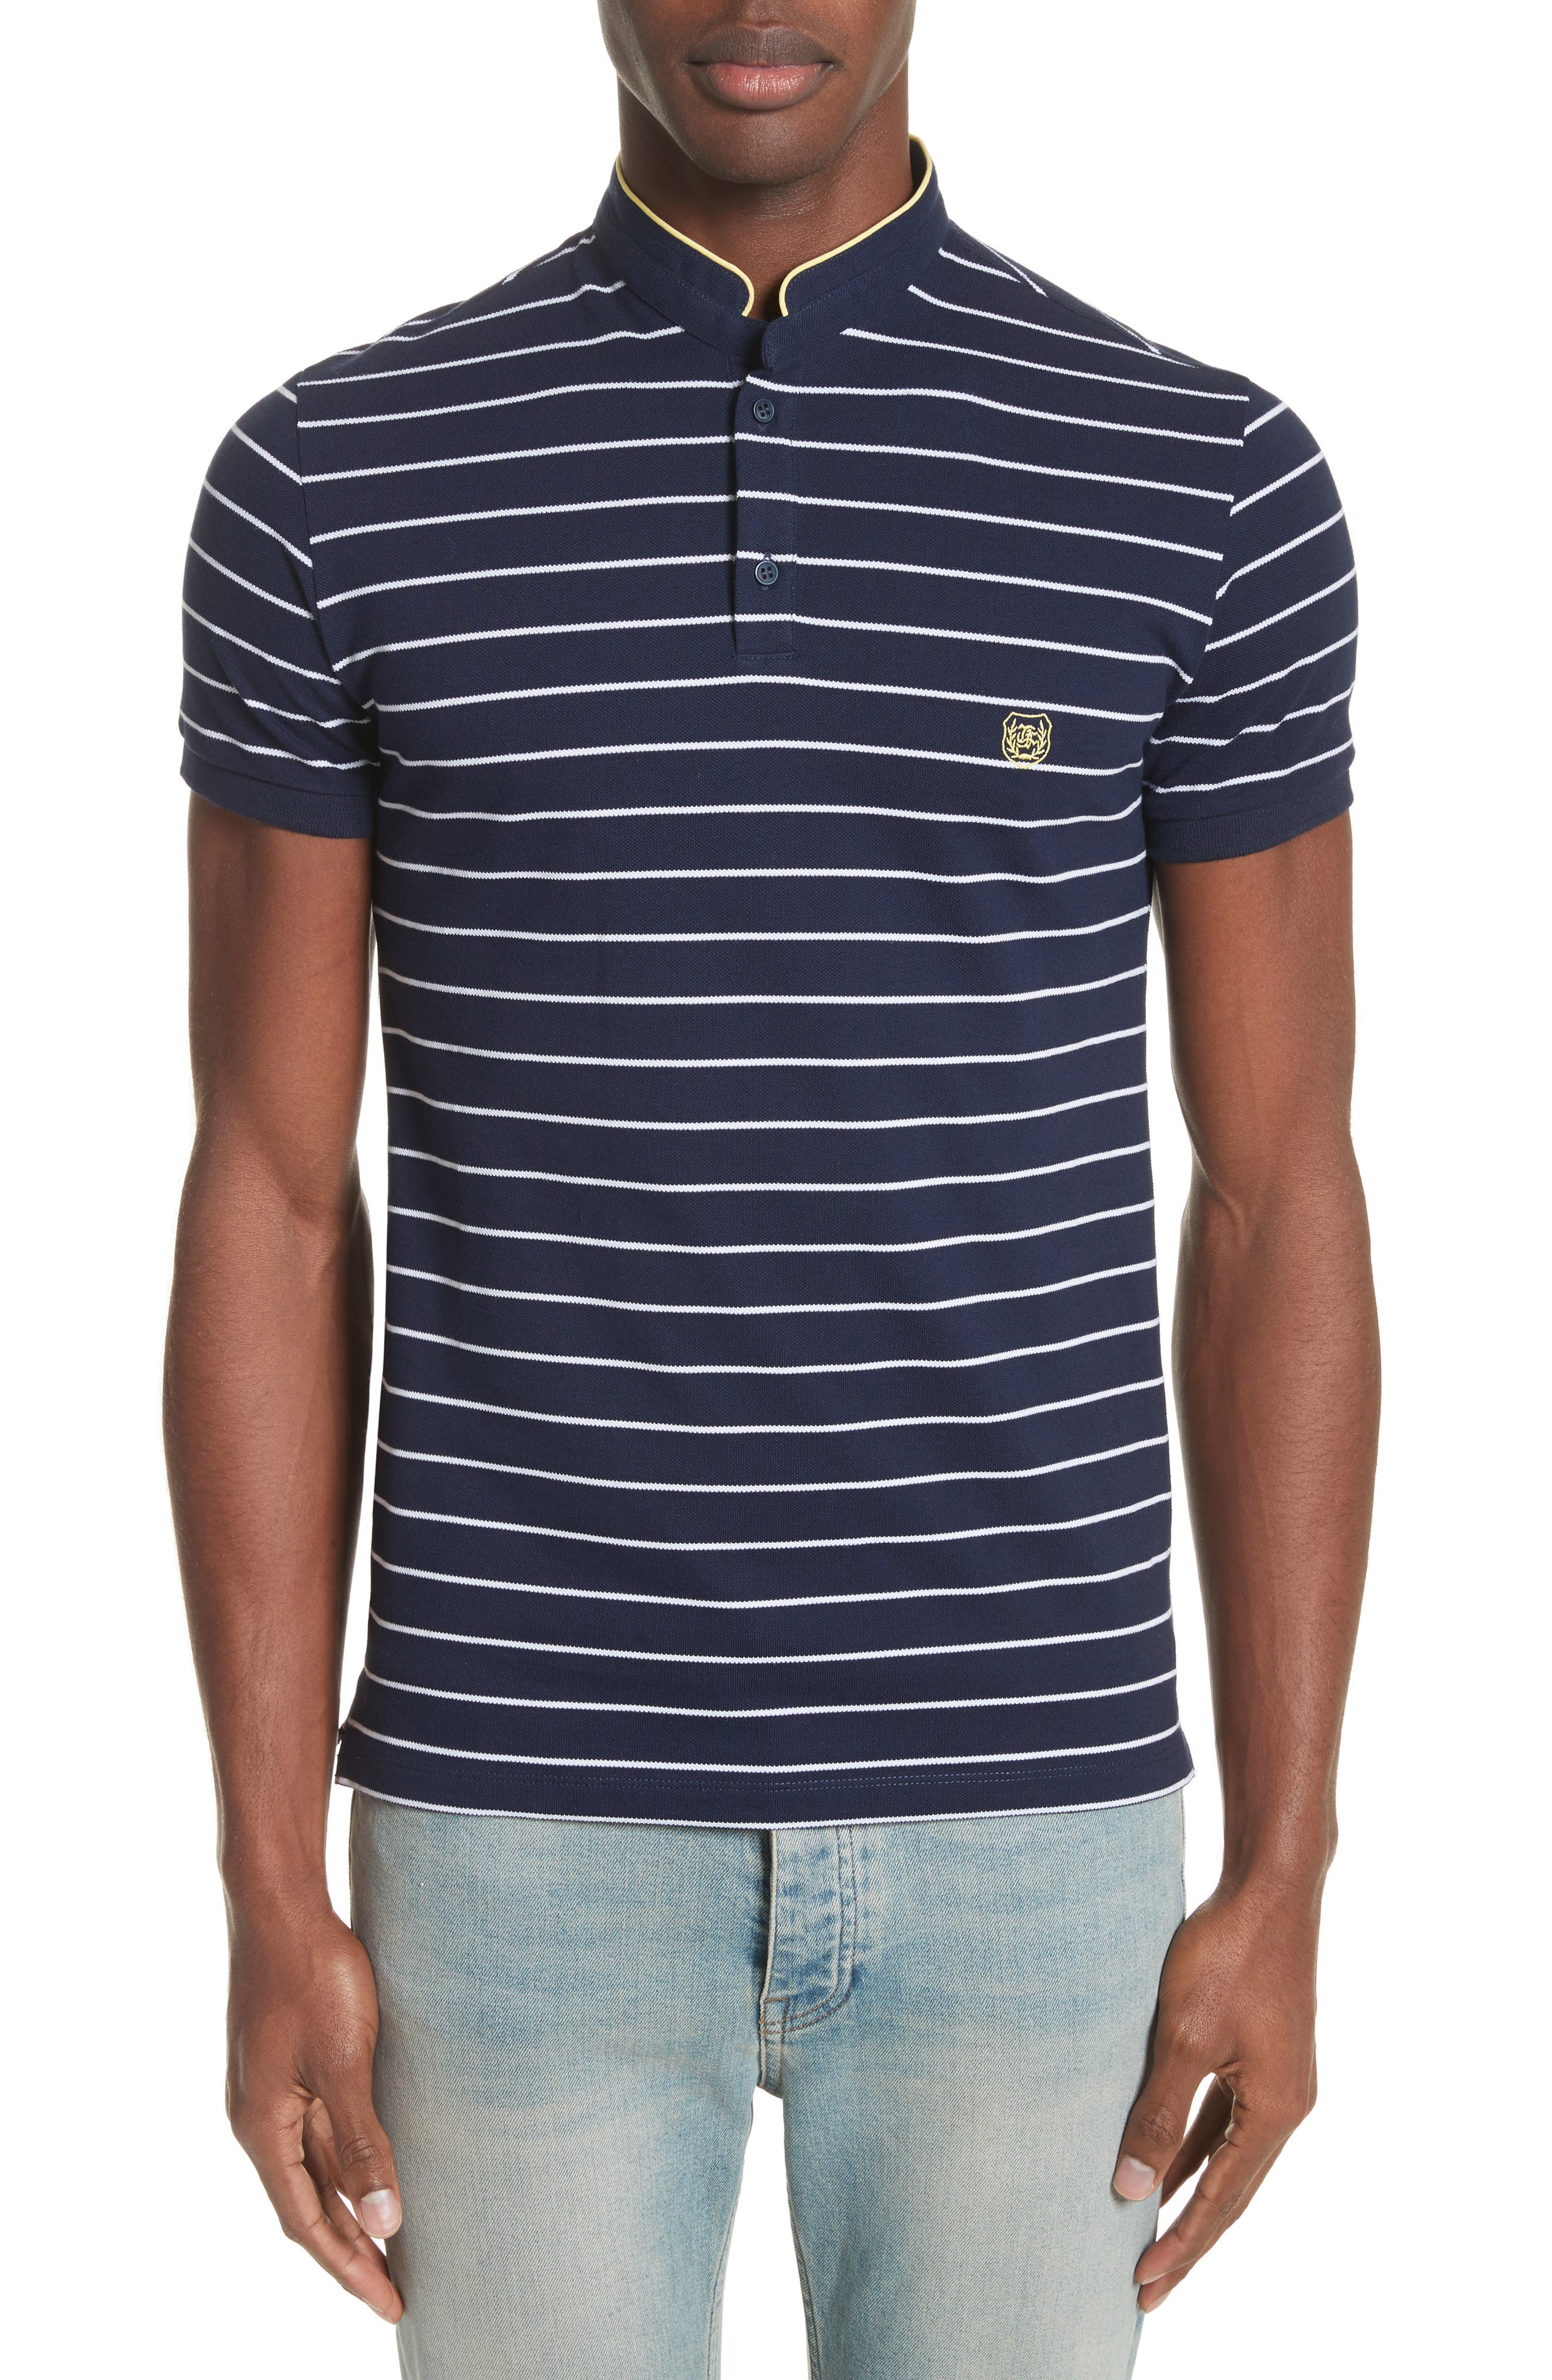 The Kooples Stripe Officer Polo Shirt. NAVY; WHITE